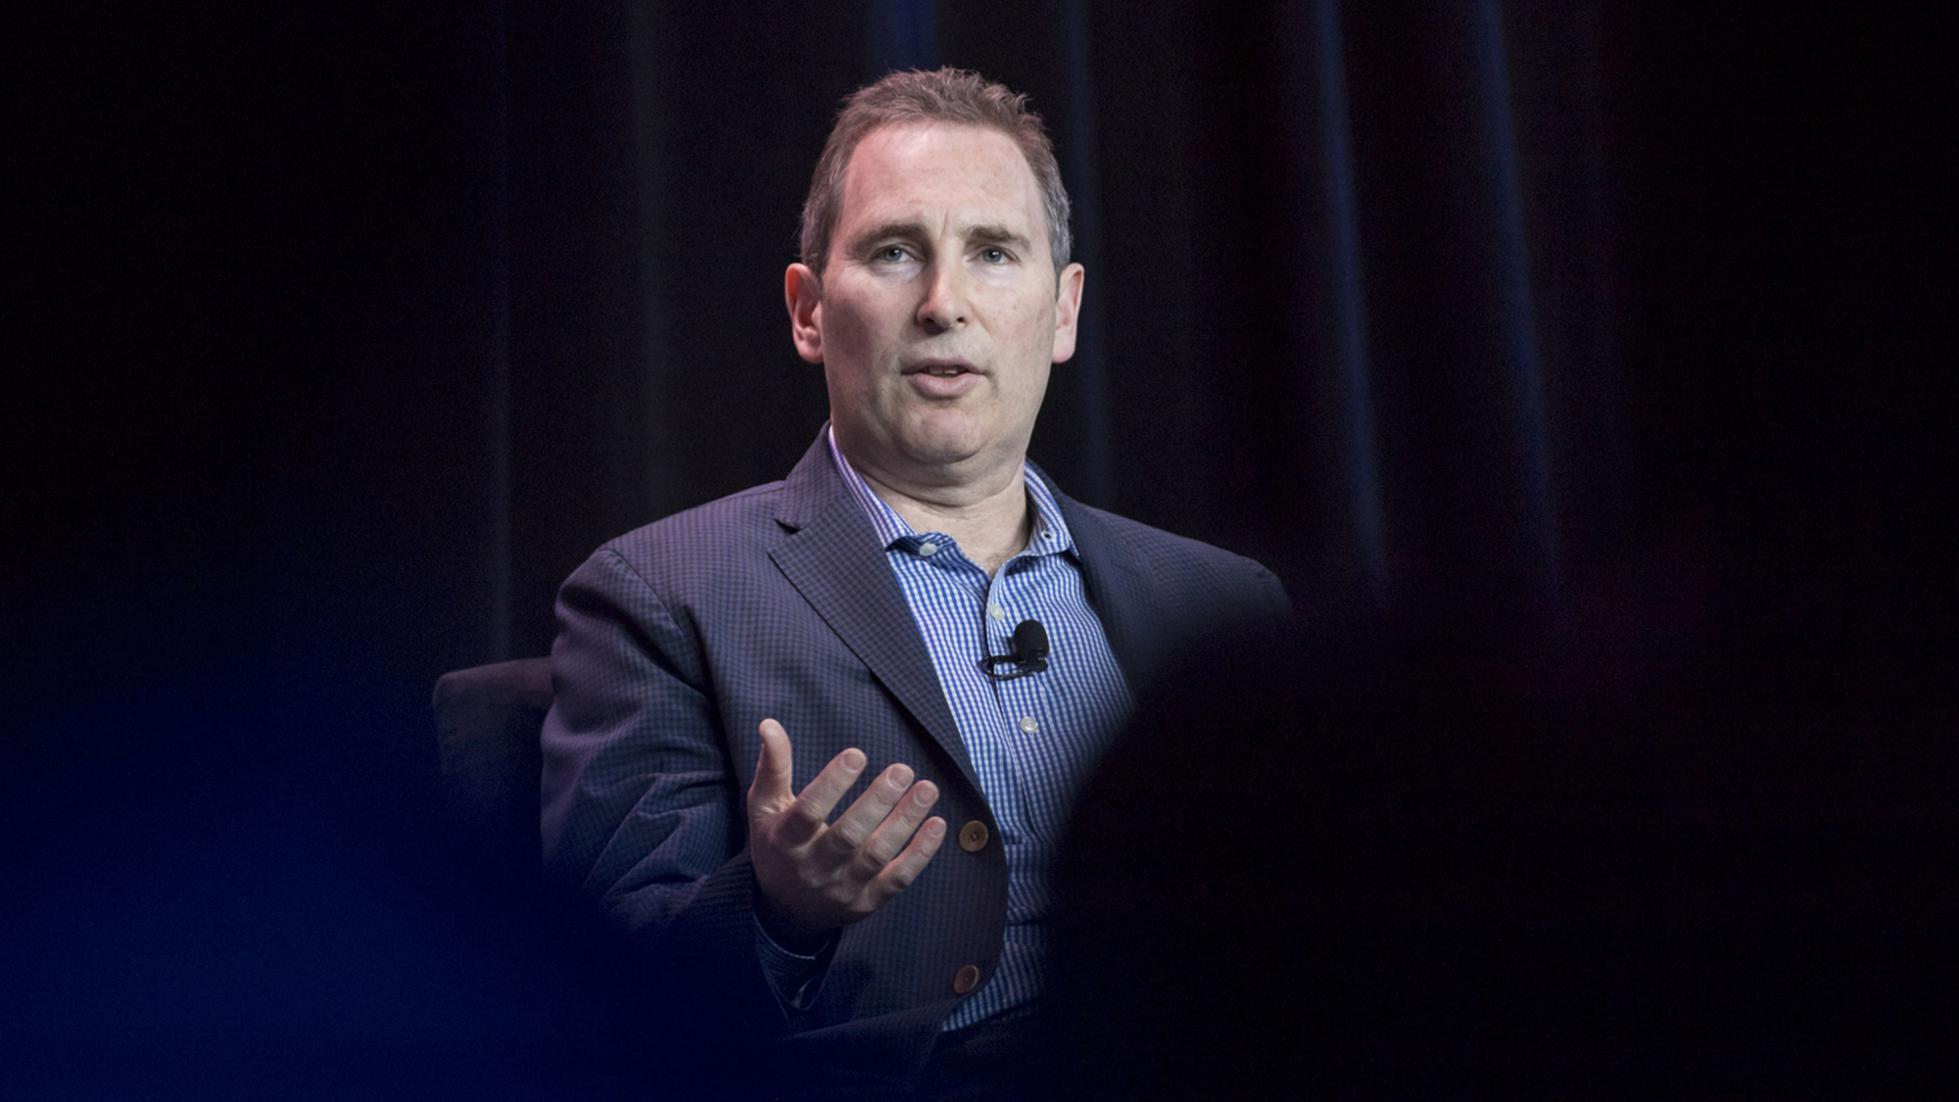 Andy Jassy built Amazon's cloud business into a $50 billion giant. His appointment as Amazon CEO signals the future of the company.